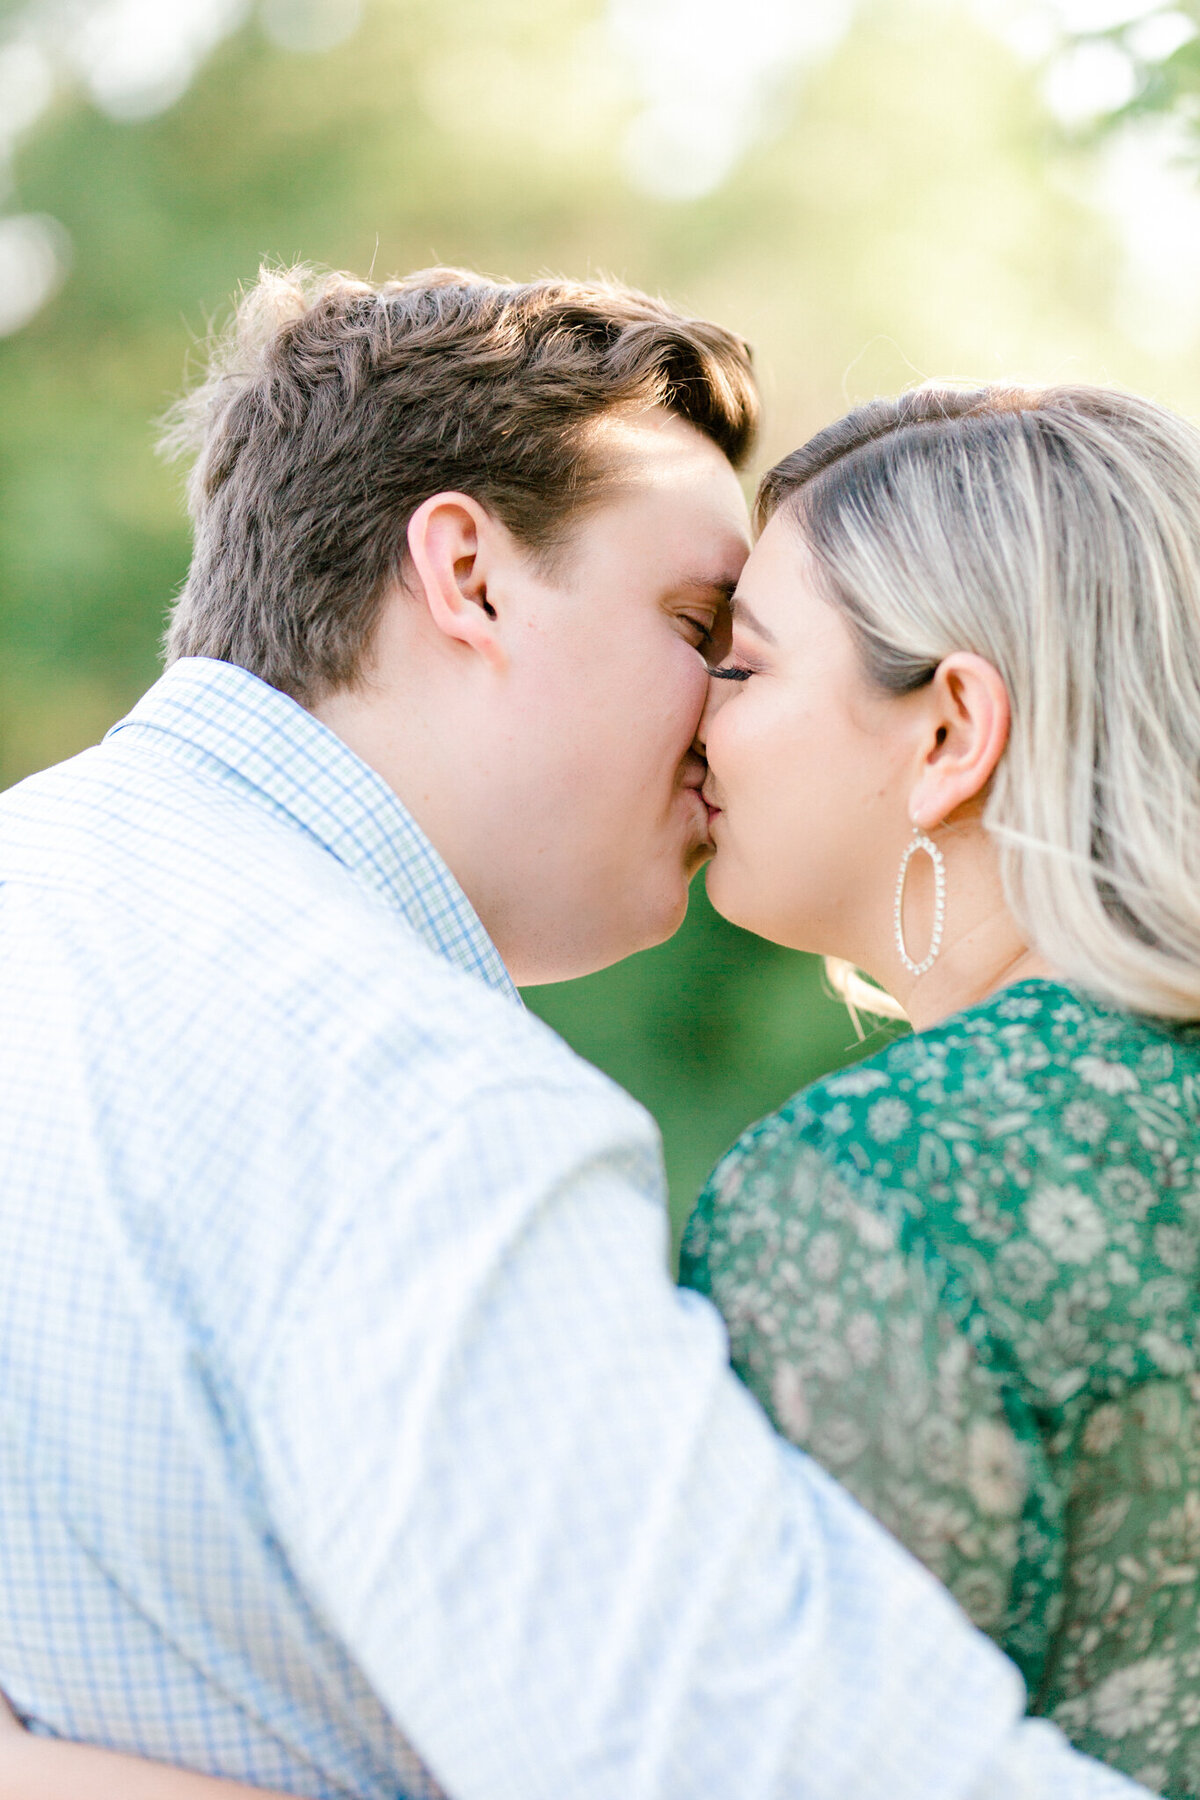 Maddie & Chris Engagement Session at Tandy Hills Natural Area | Sami Kathryn Photography | Dallas DFW Fort Worth Wedding and Portrait Photogapher-9